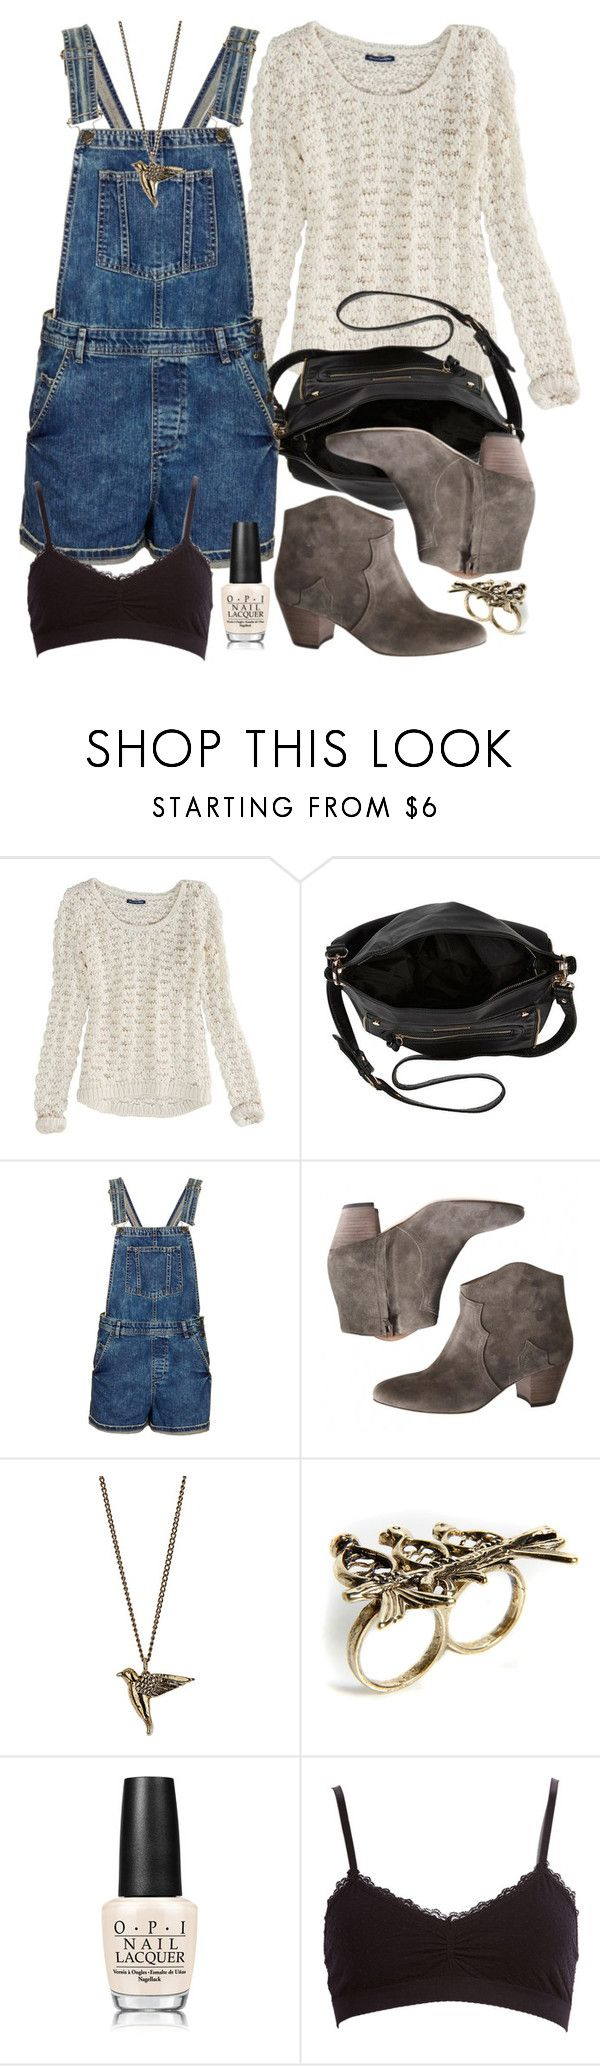 Allison Inspired Outfit with Overalls by veterization on Polyvore featuring American Eagle Outfitters, Topshop, Forever 21, Isabel Marant, River Island, Boohoo, Dorothy Perkins and OPI